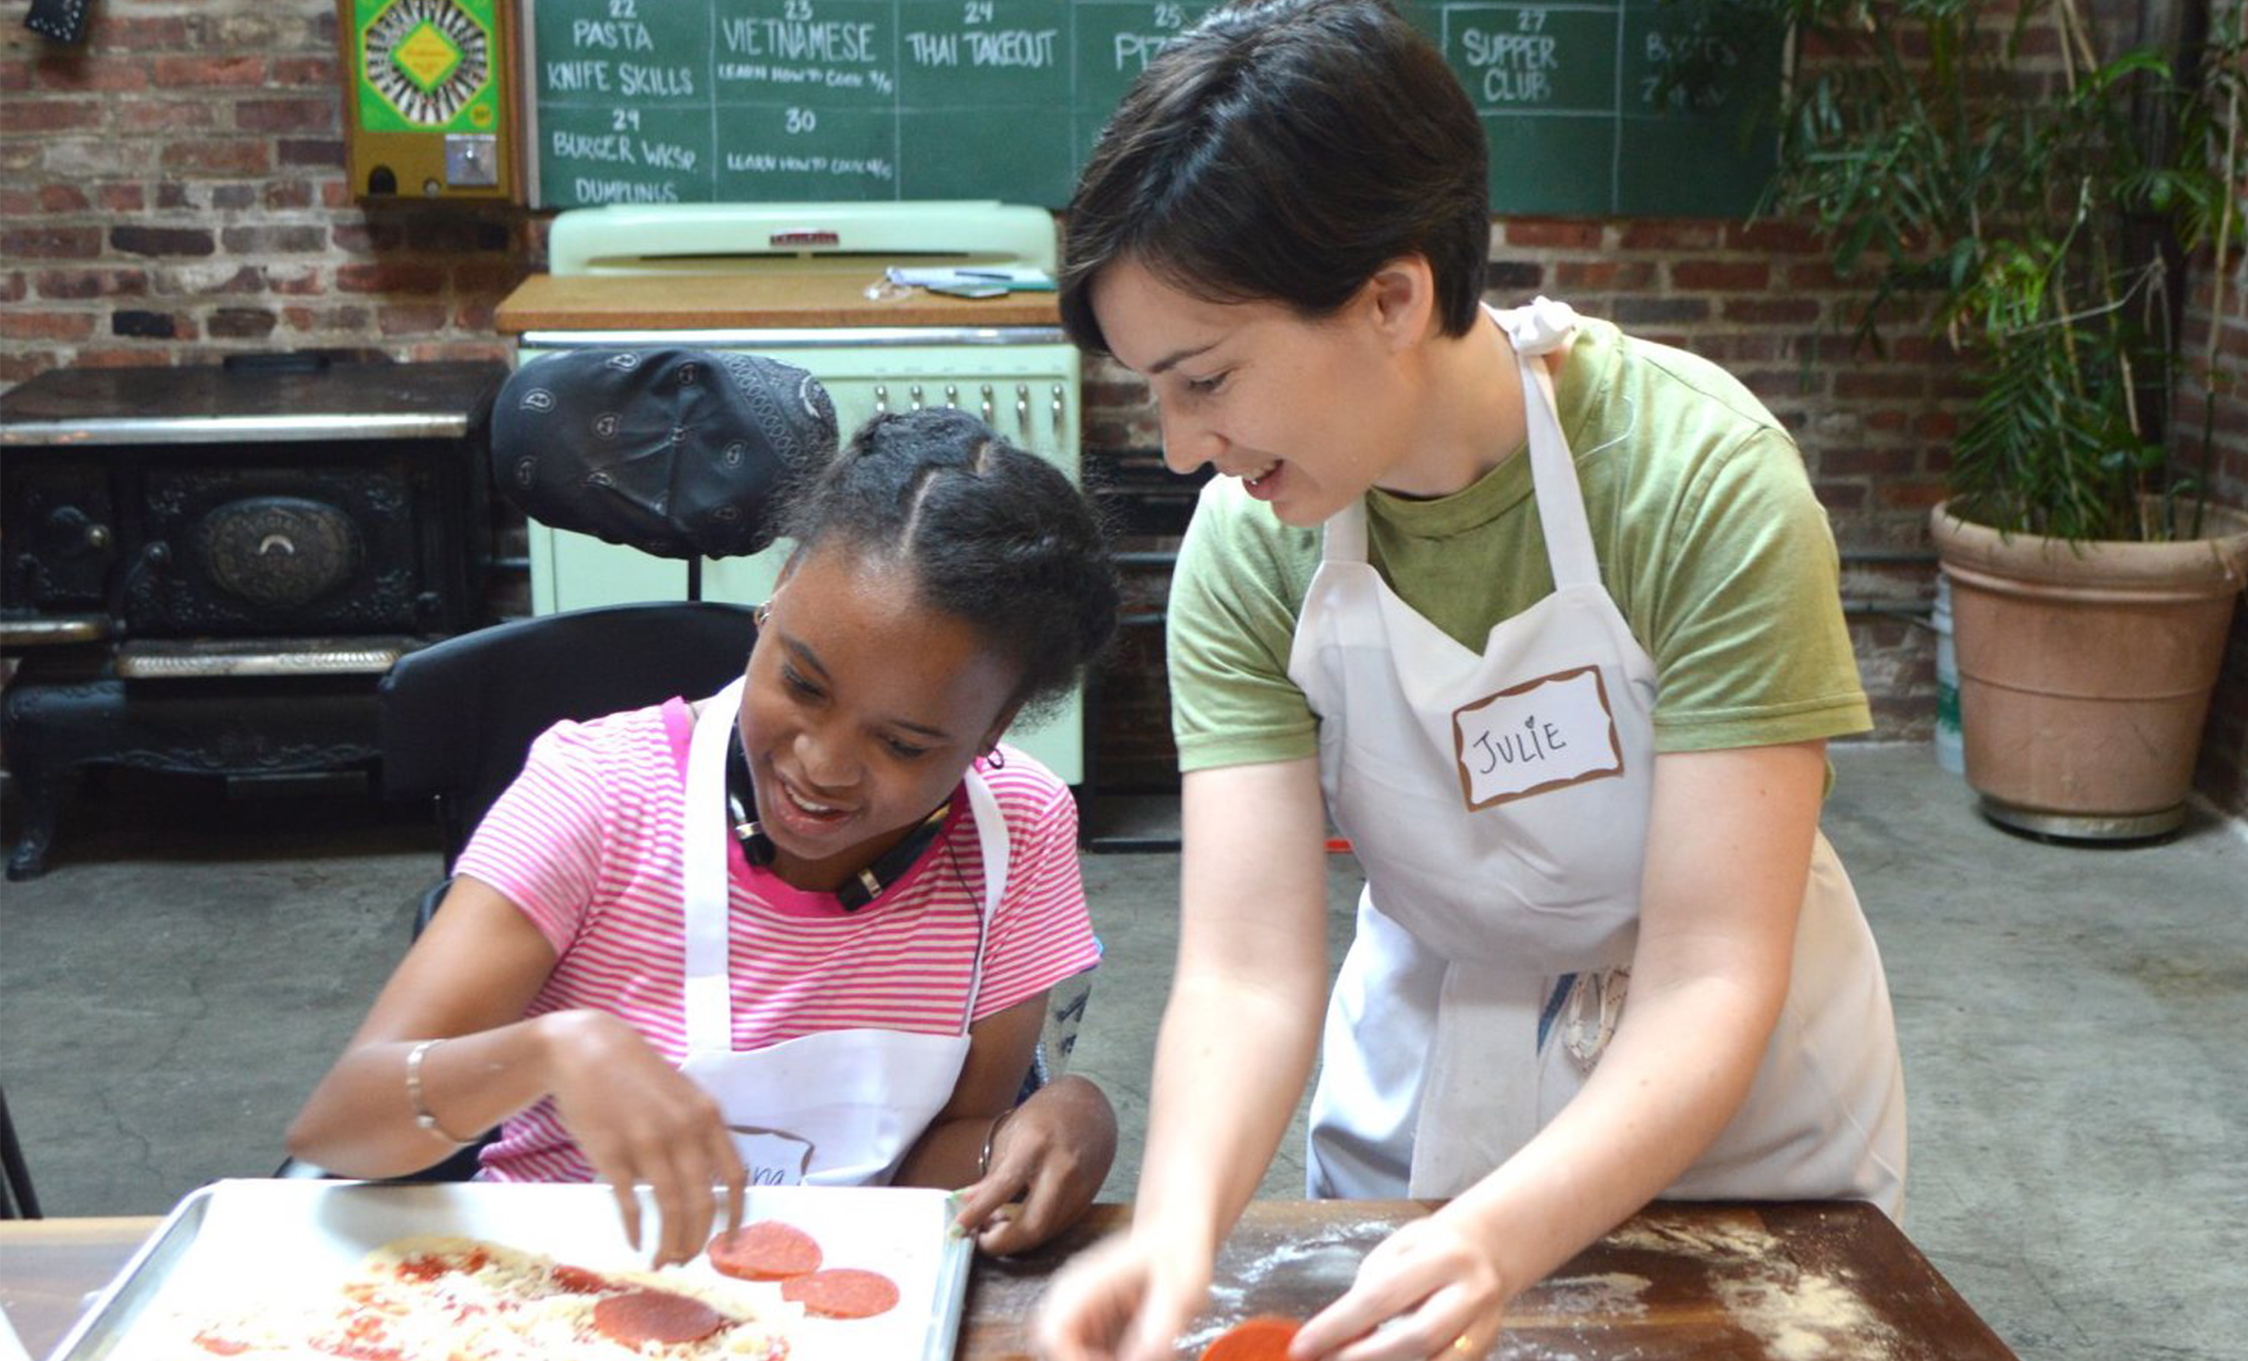 INCLUDEnyc volunteer is making pizza with an INCLUDEnyc youth